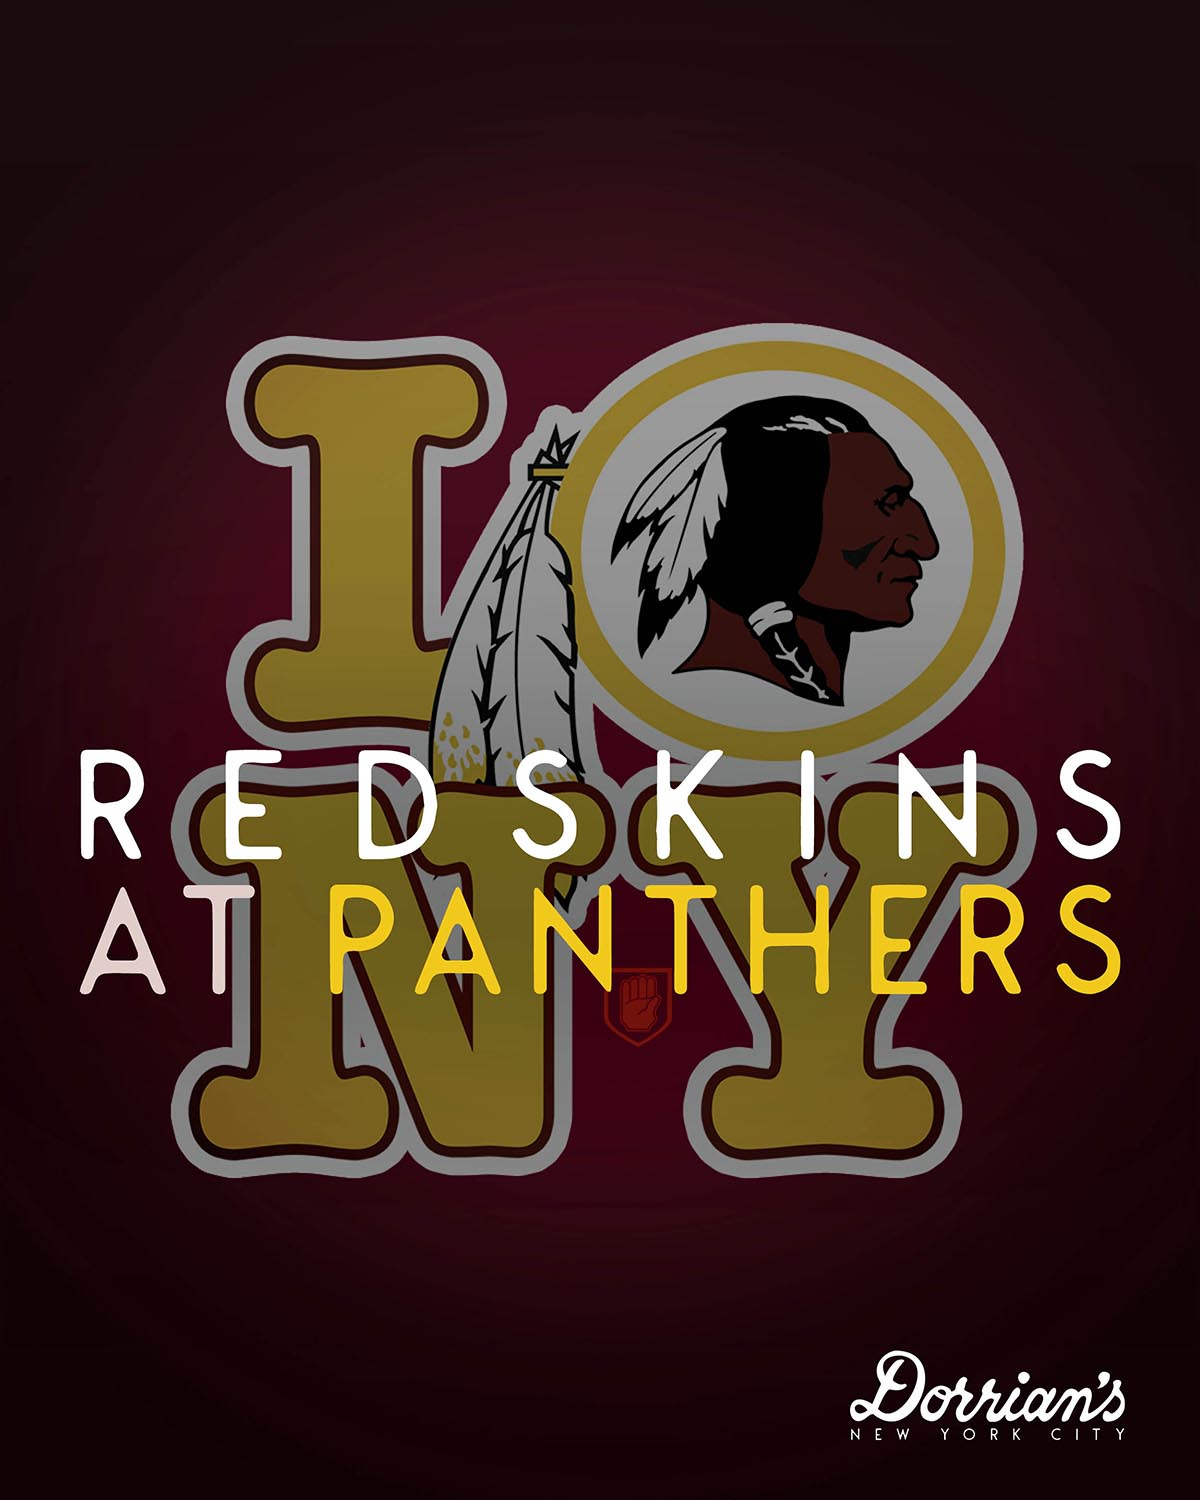 drh_nyc-2019-insta-redskins-at-panthers-1500.jpg